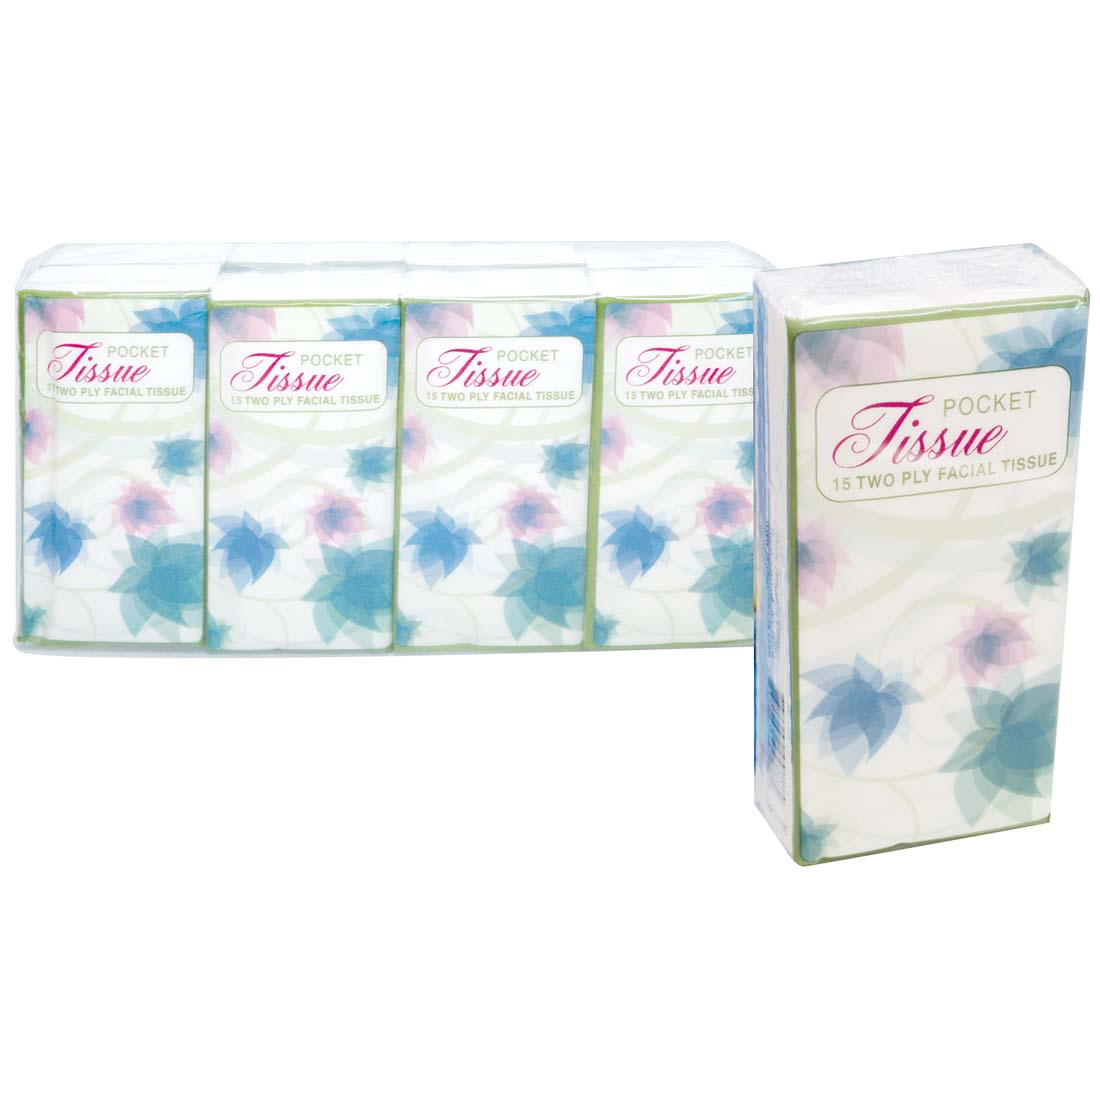 View POCKET TISSUE 8 PACK 15-2 PLY SHEETS FLORAL DESIGN